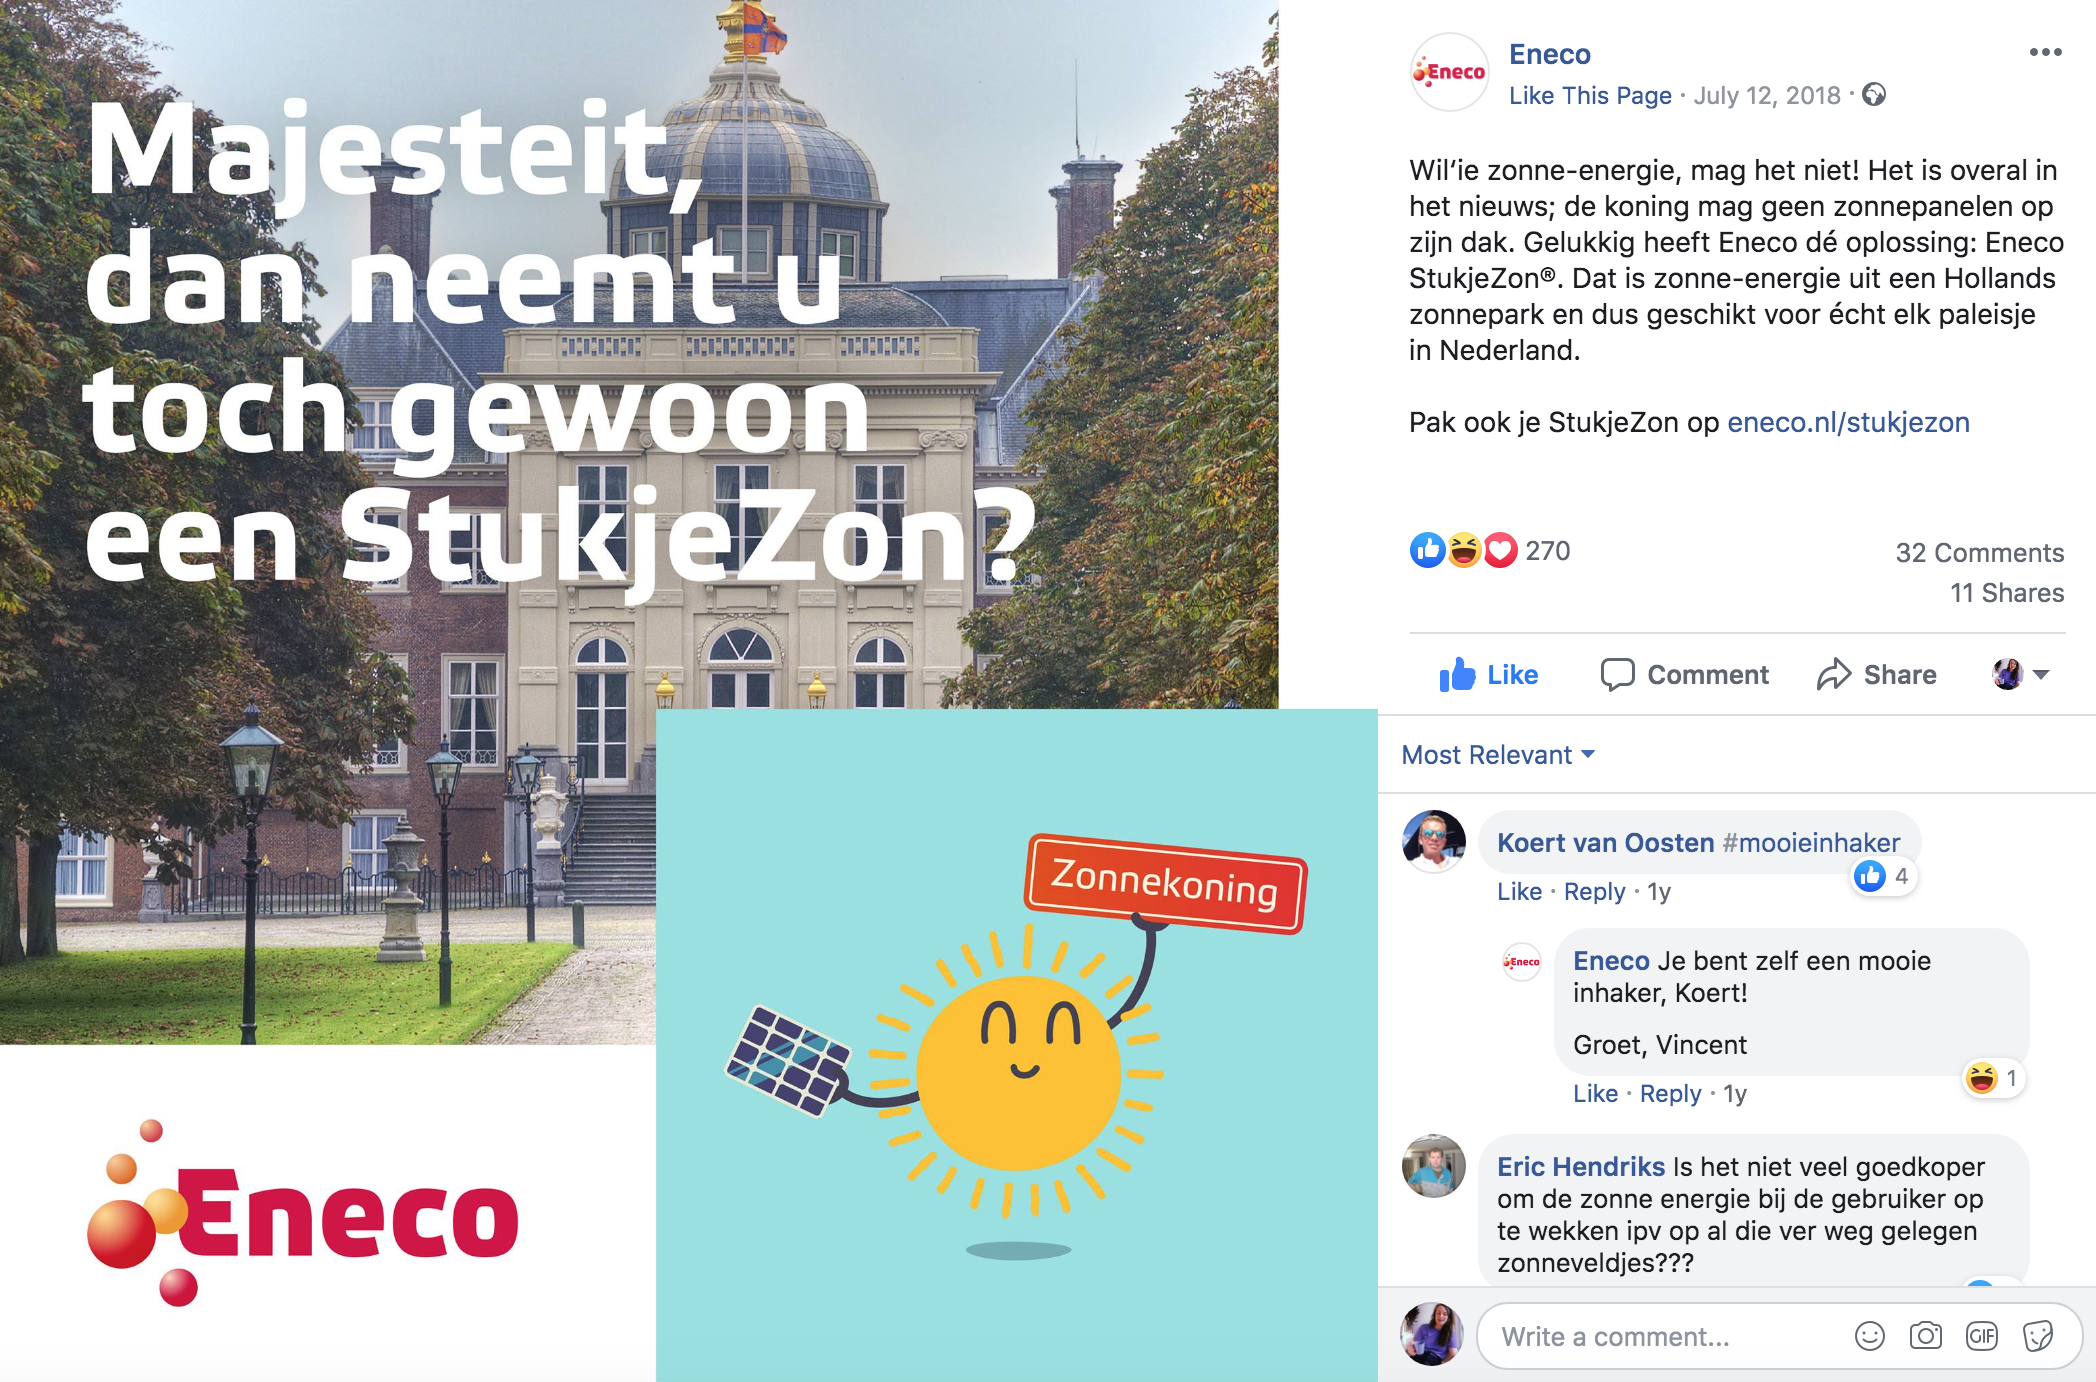 - The Dutch King wanted solar panels on his palace. Although a prince normally gets what he wants, he was prohibited. That's why we drove to the palace and made him an offer he couldn't refuse: Your majesty, why don't you get a StukjeZon®?